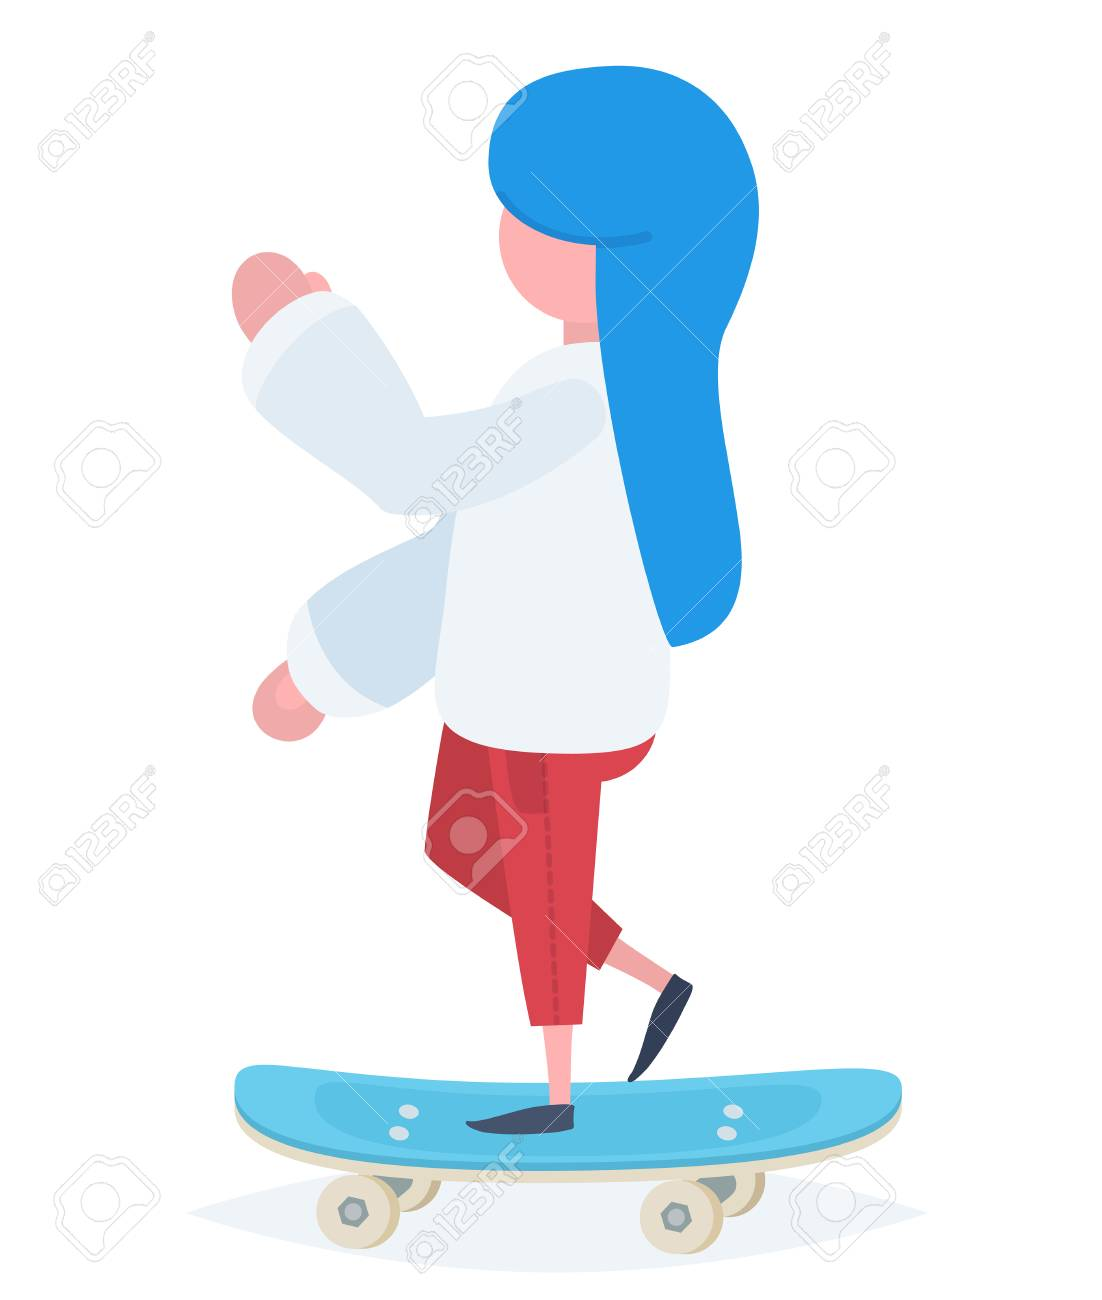 A girl with blue hair standing on a skateboard Stock Vector - 44593267